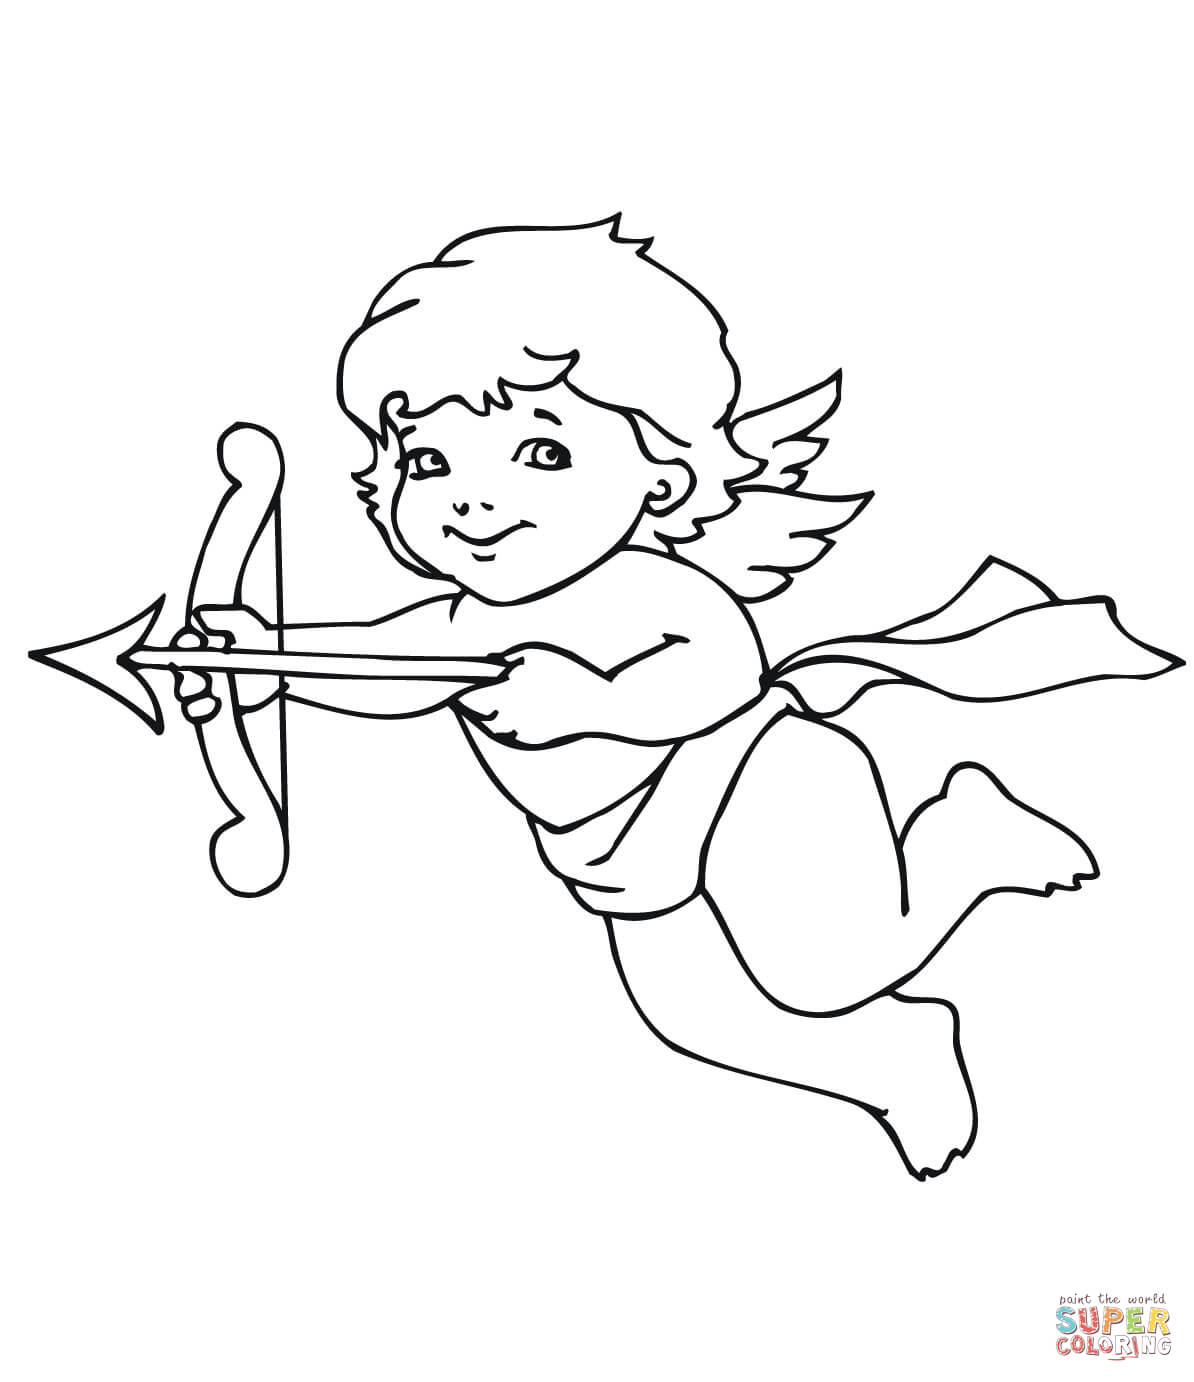 coloring pages cupid - photo#4